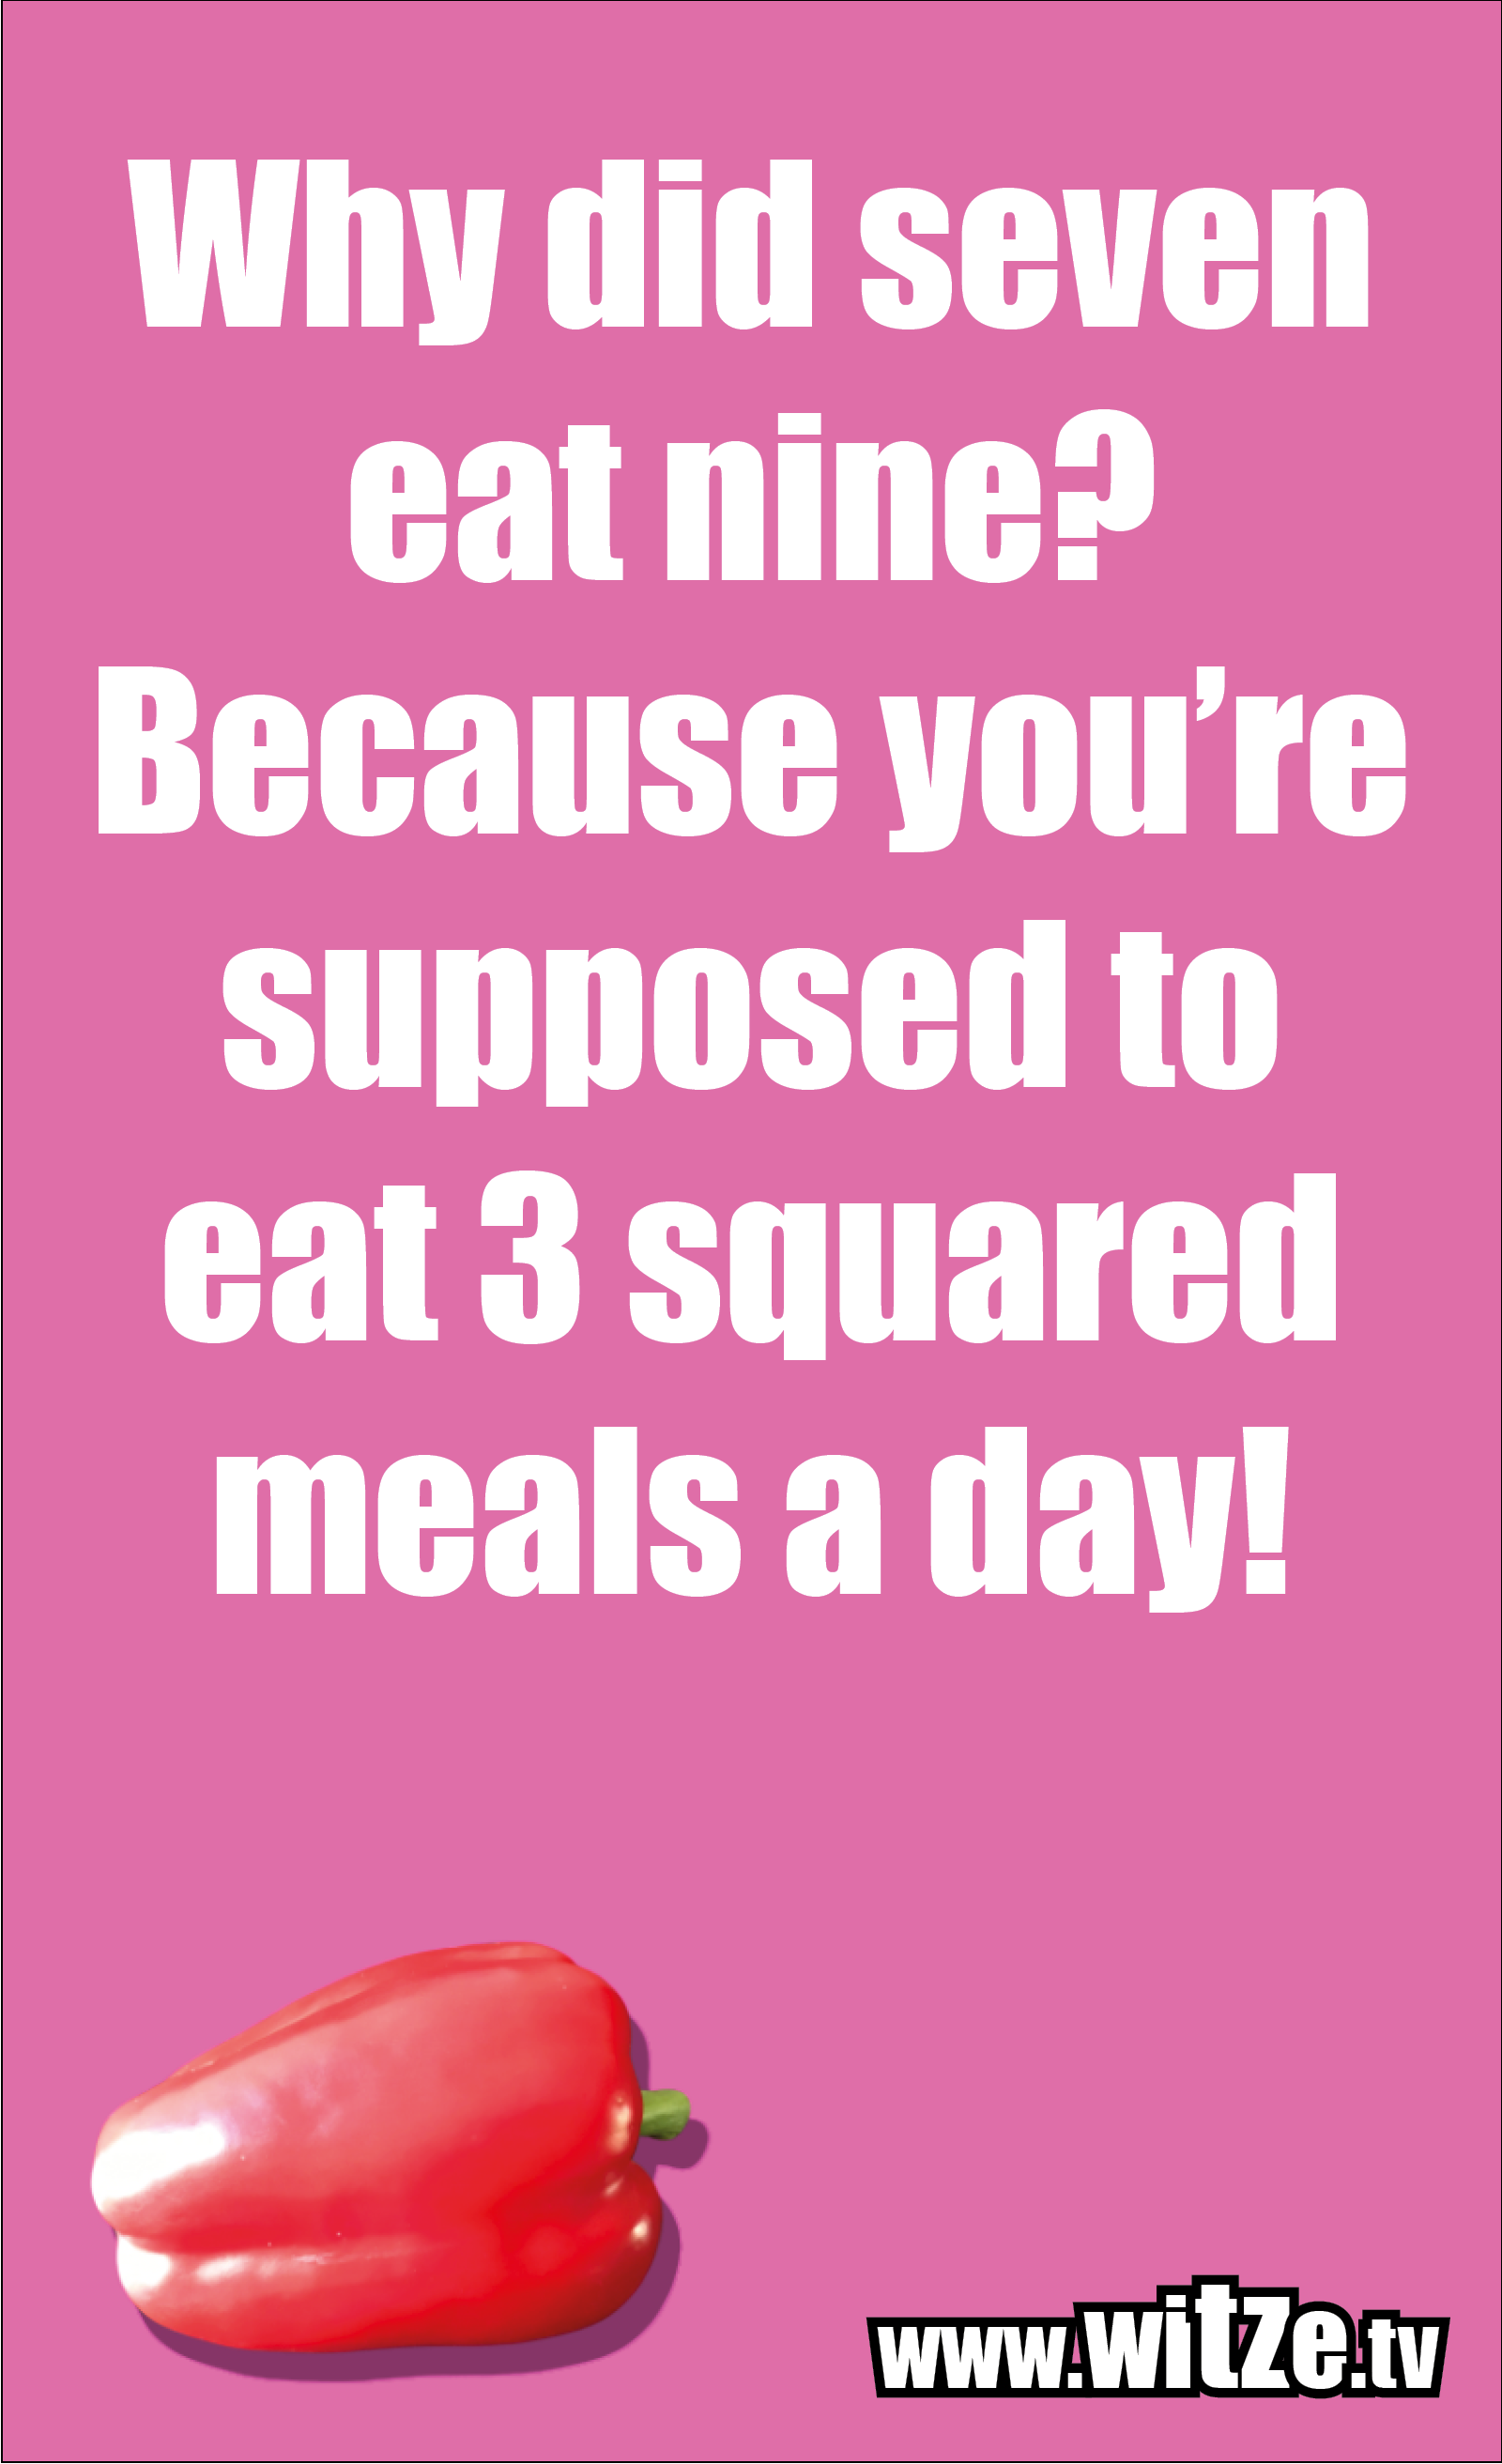 Math joke… Why did seven eat nine? Because you're supposed to eat 3 squared meals a day!